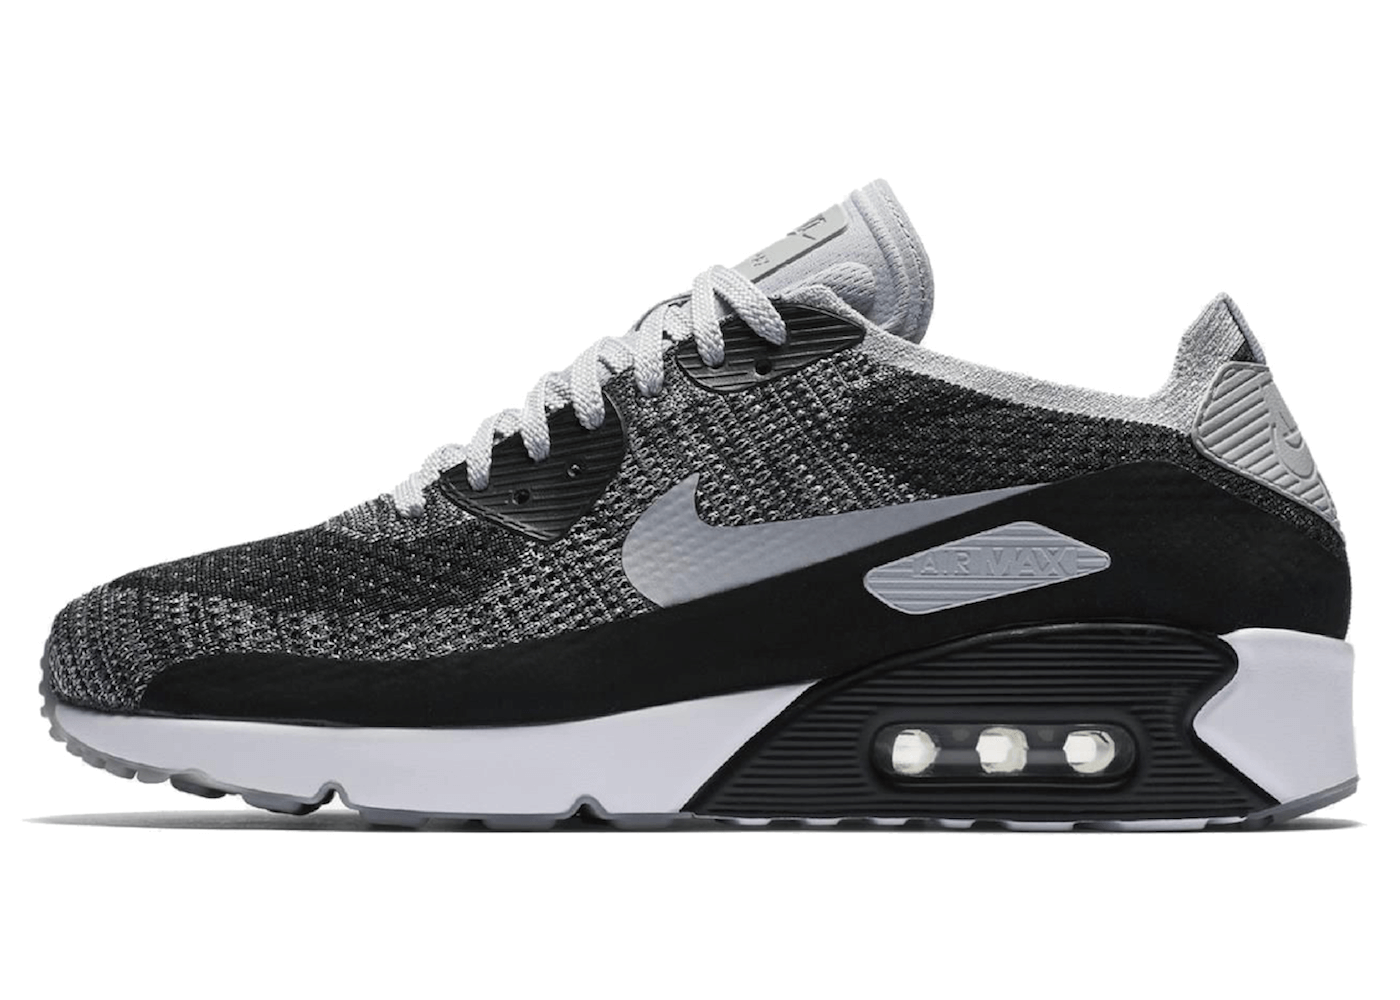 finest selection 9c7ce 3995f Air Max 90 Ultra 2.0 Flyknit Black Wolf Greyの写真. 製品番号  875943-005 ...